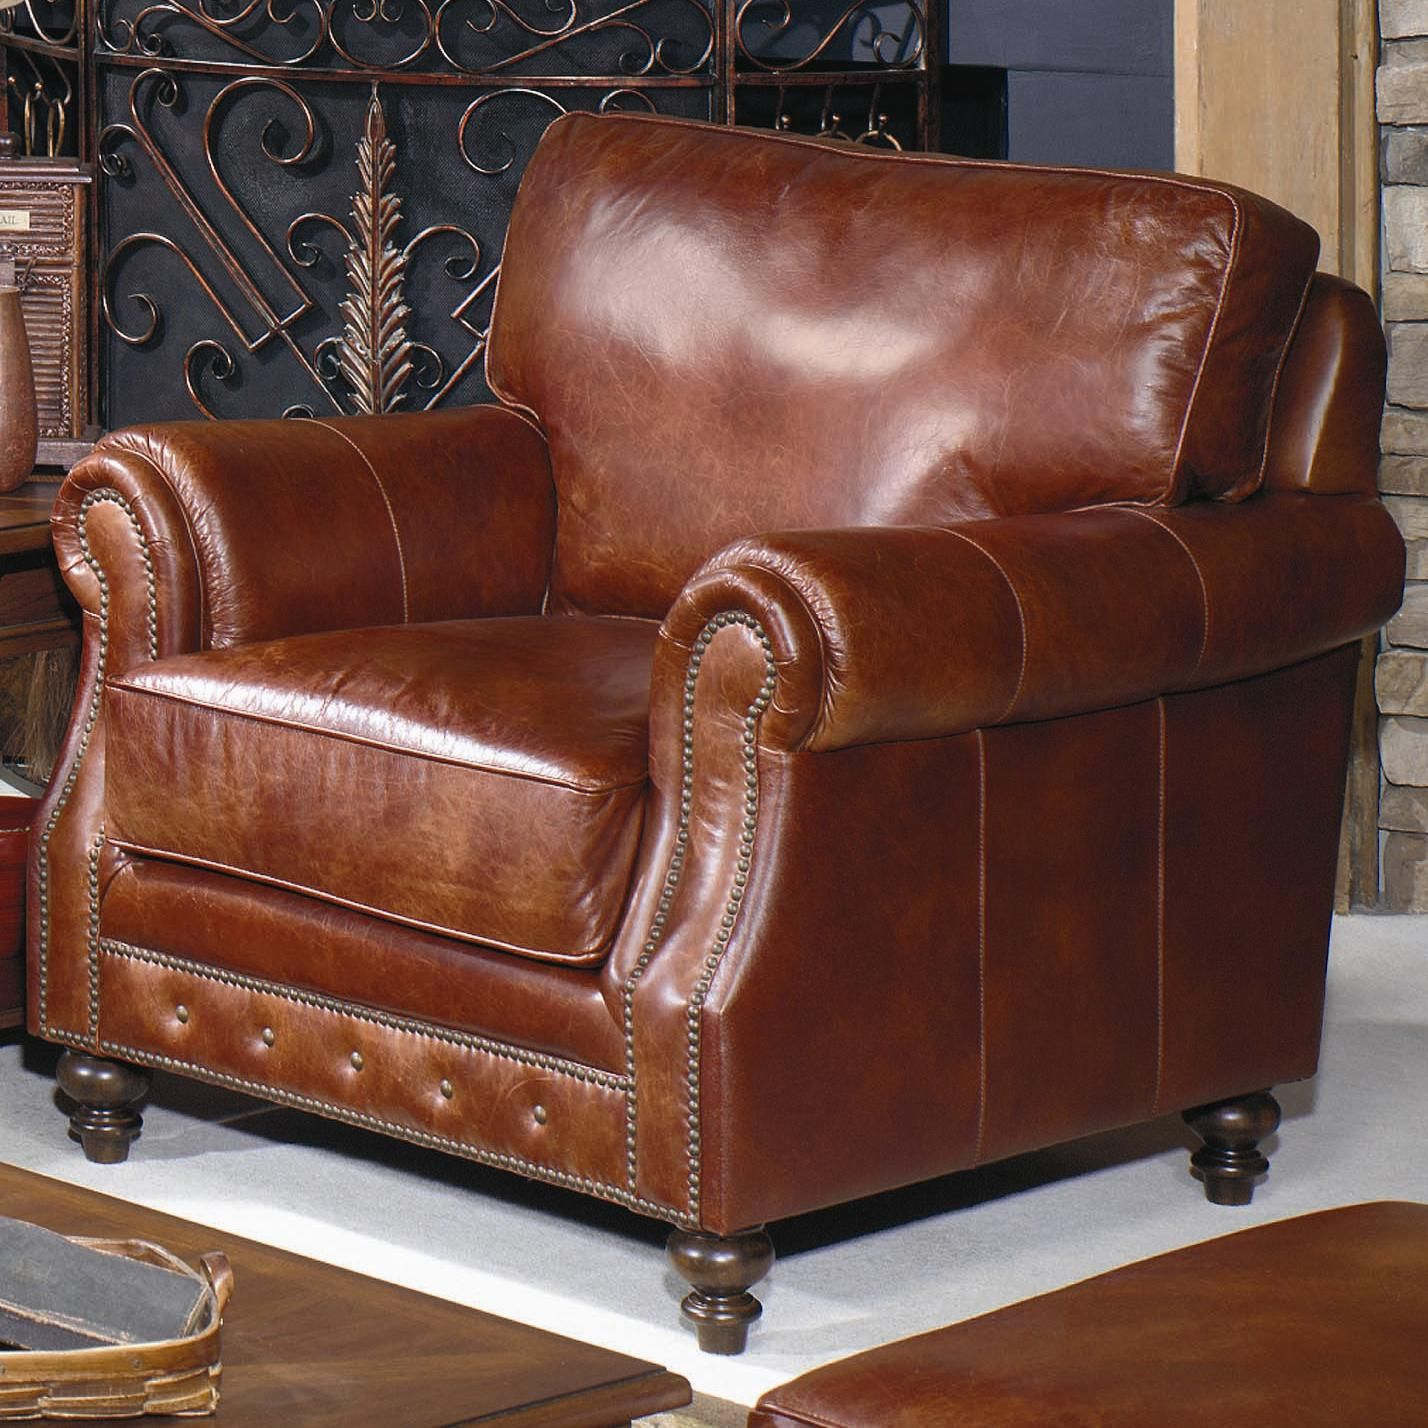 Craftmaster L928 Leather Chair With Nailhead Trim At Riverview Galleries Chair Leather Chair Accent Chairs